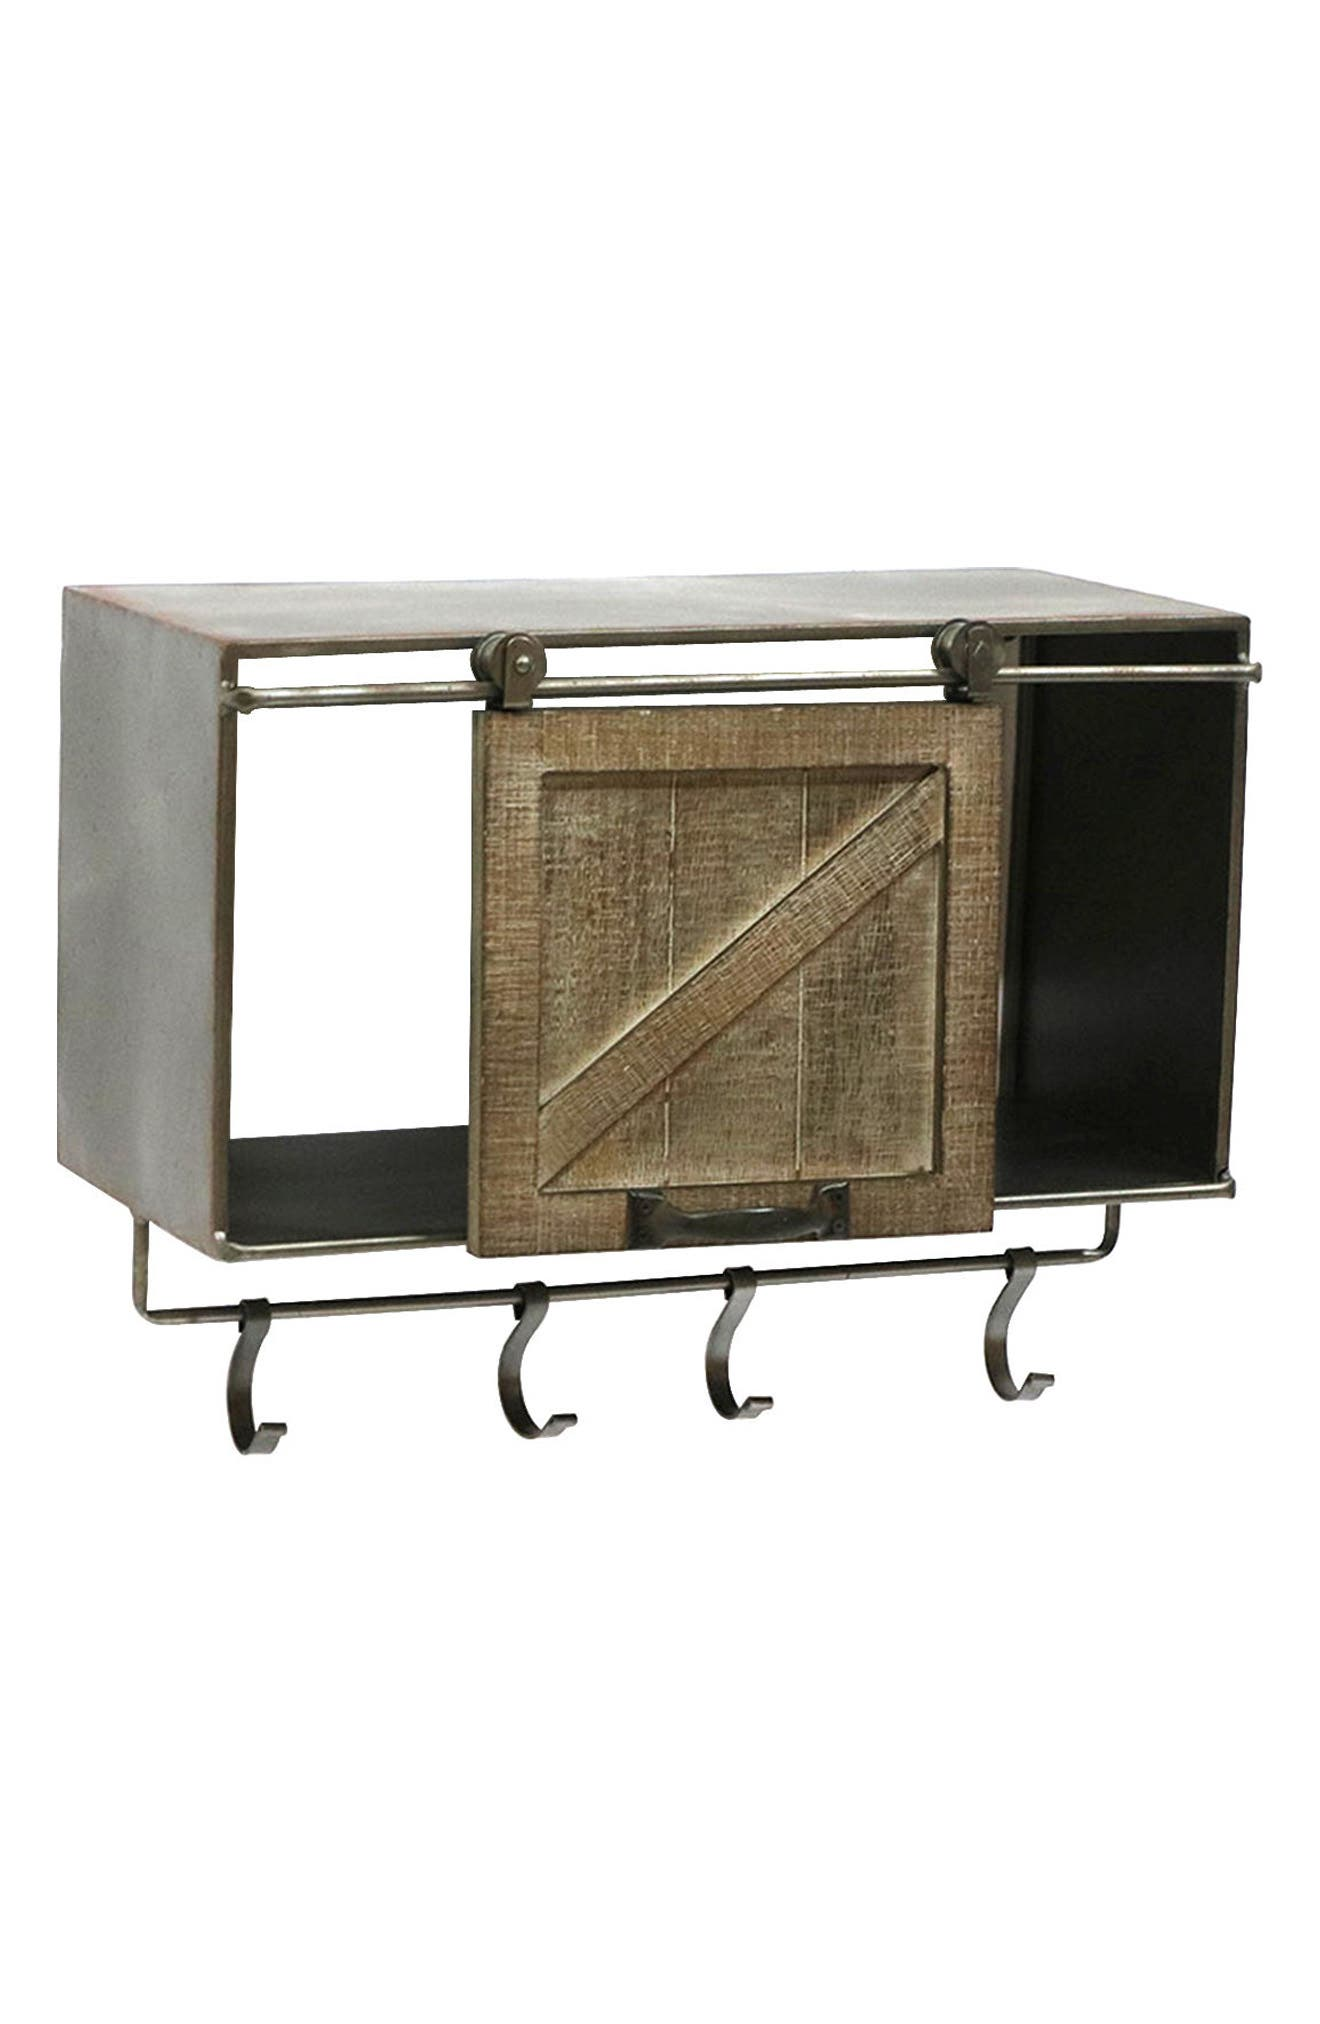 Main Image - Crystal Art Gallery Metal & Wood Wall Cabinet with Hooks